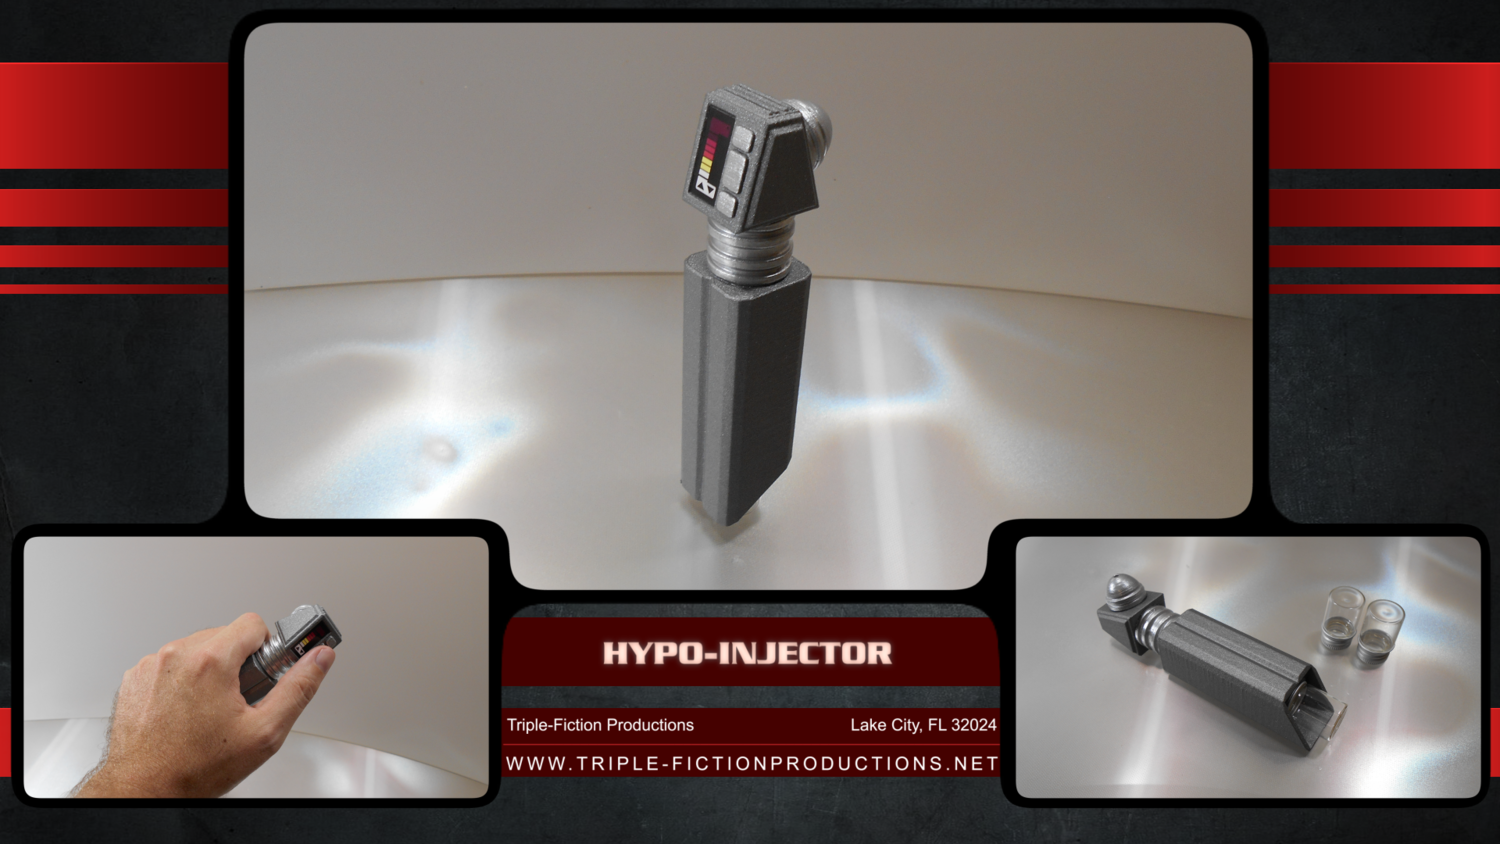 Hypo-Injector